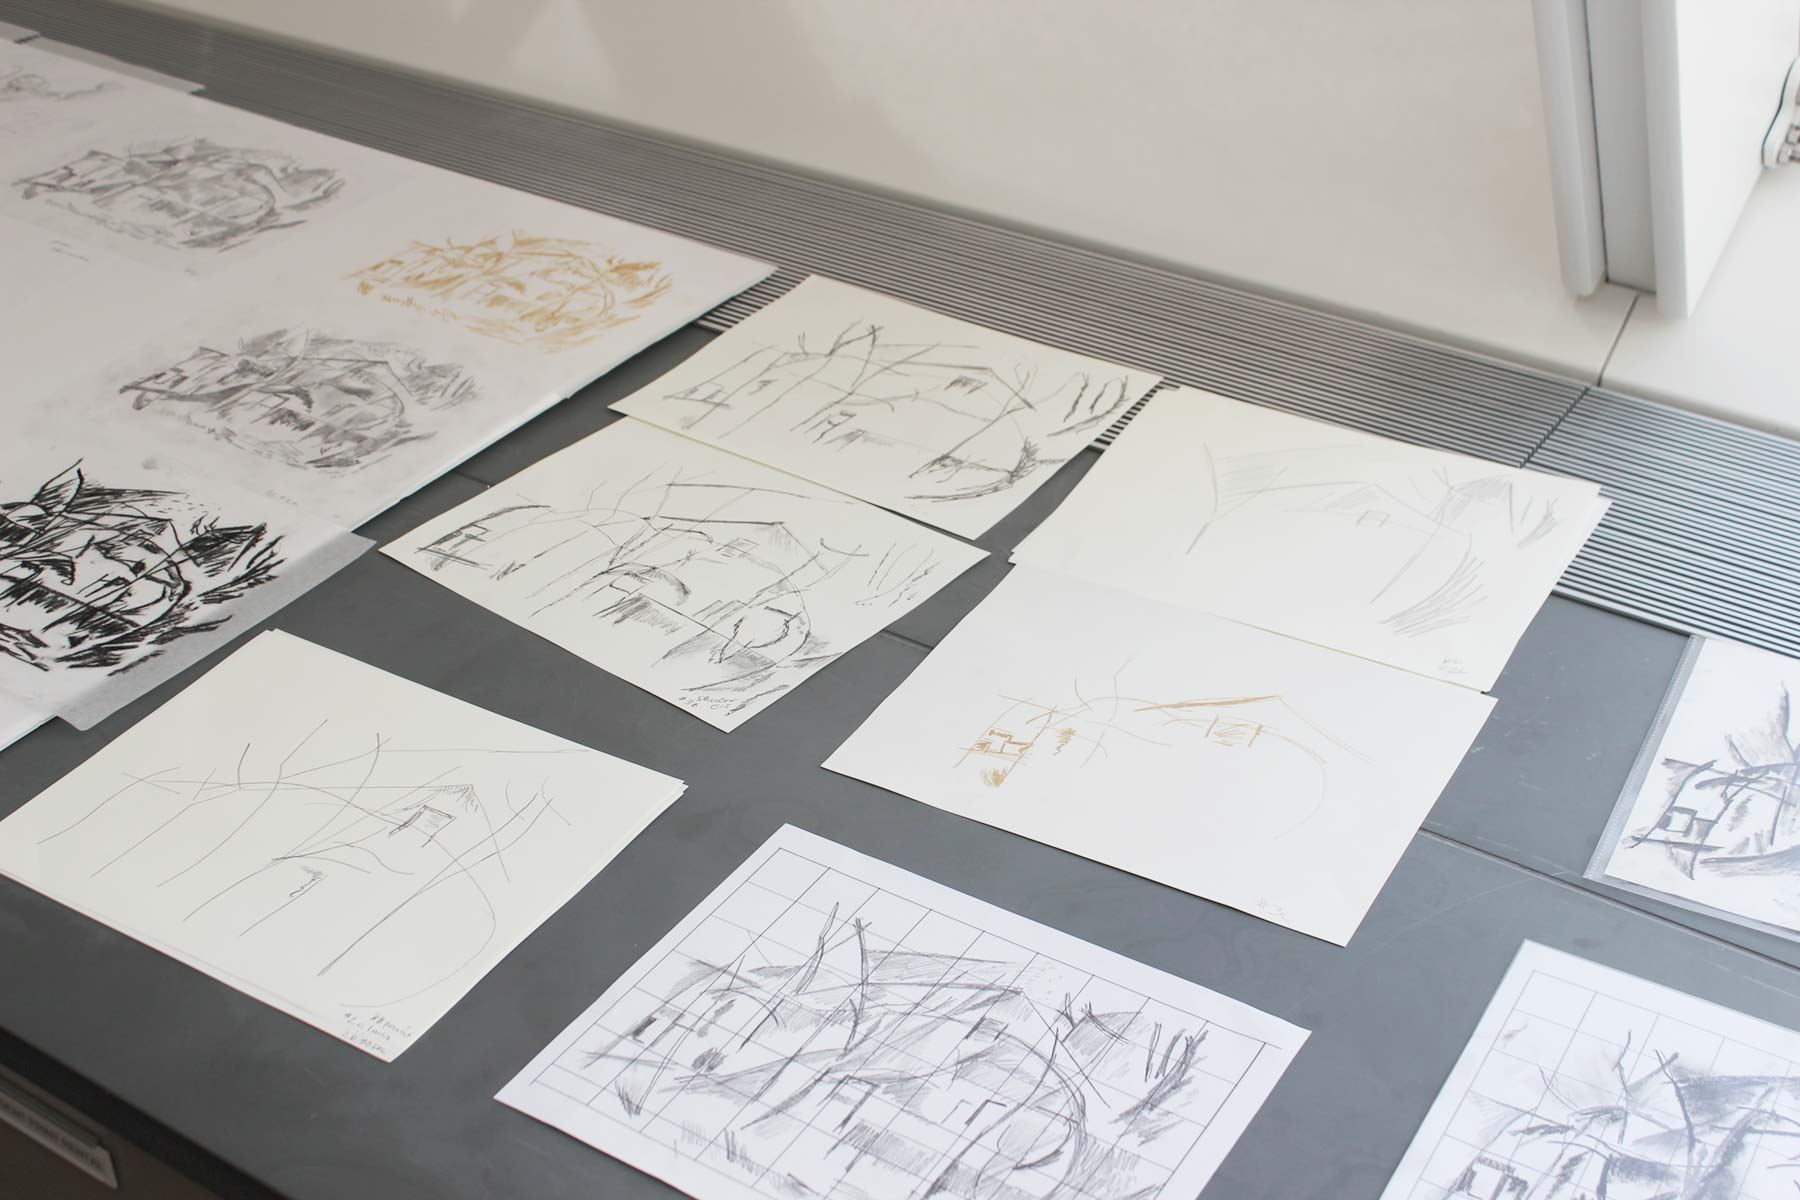 A group of drawings on a table imitating Sheeler's landscape drawing.